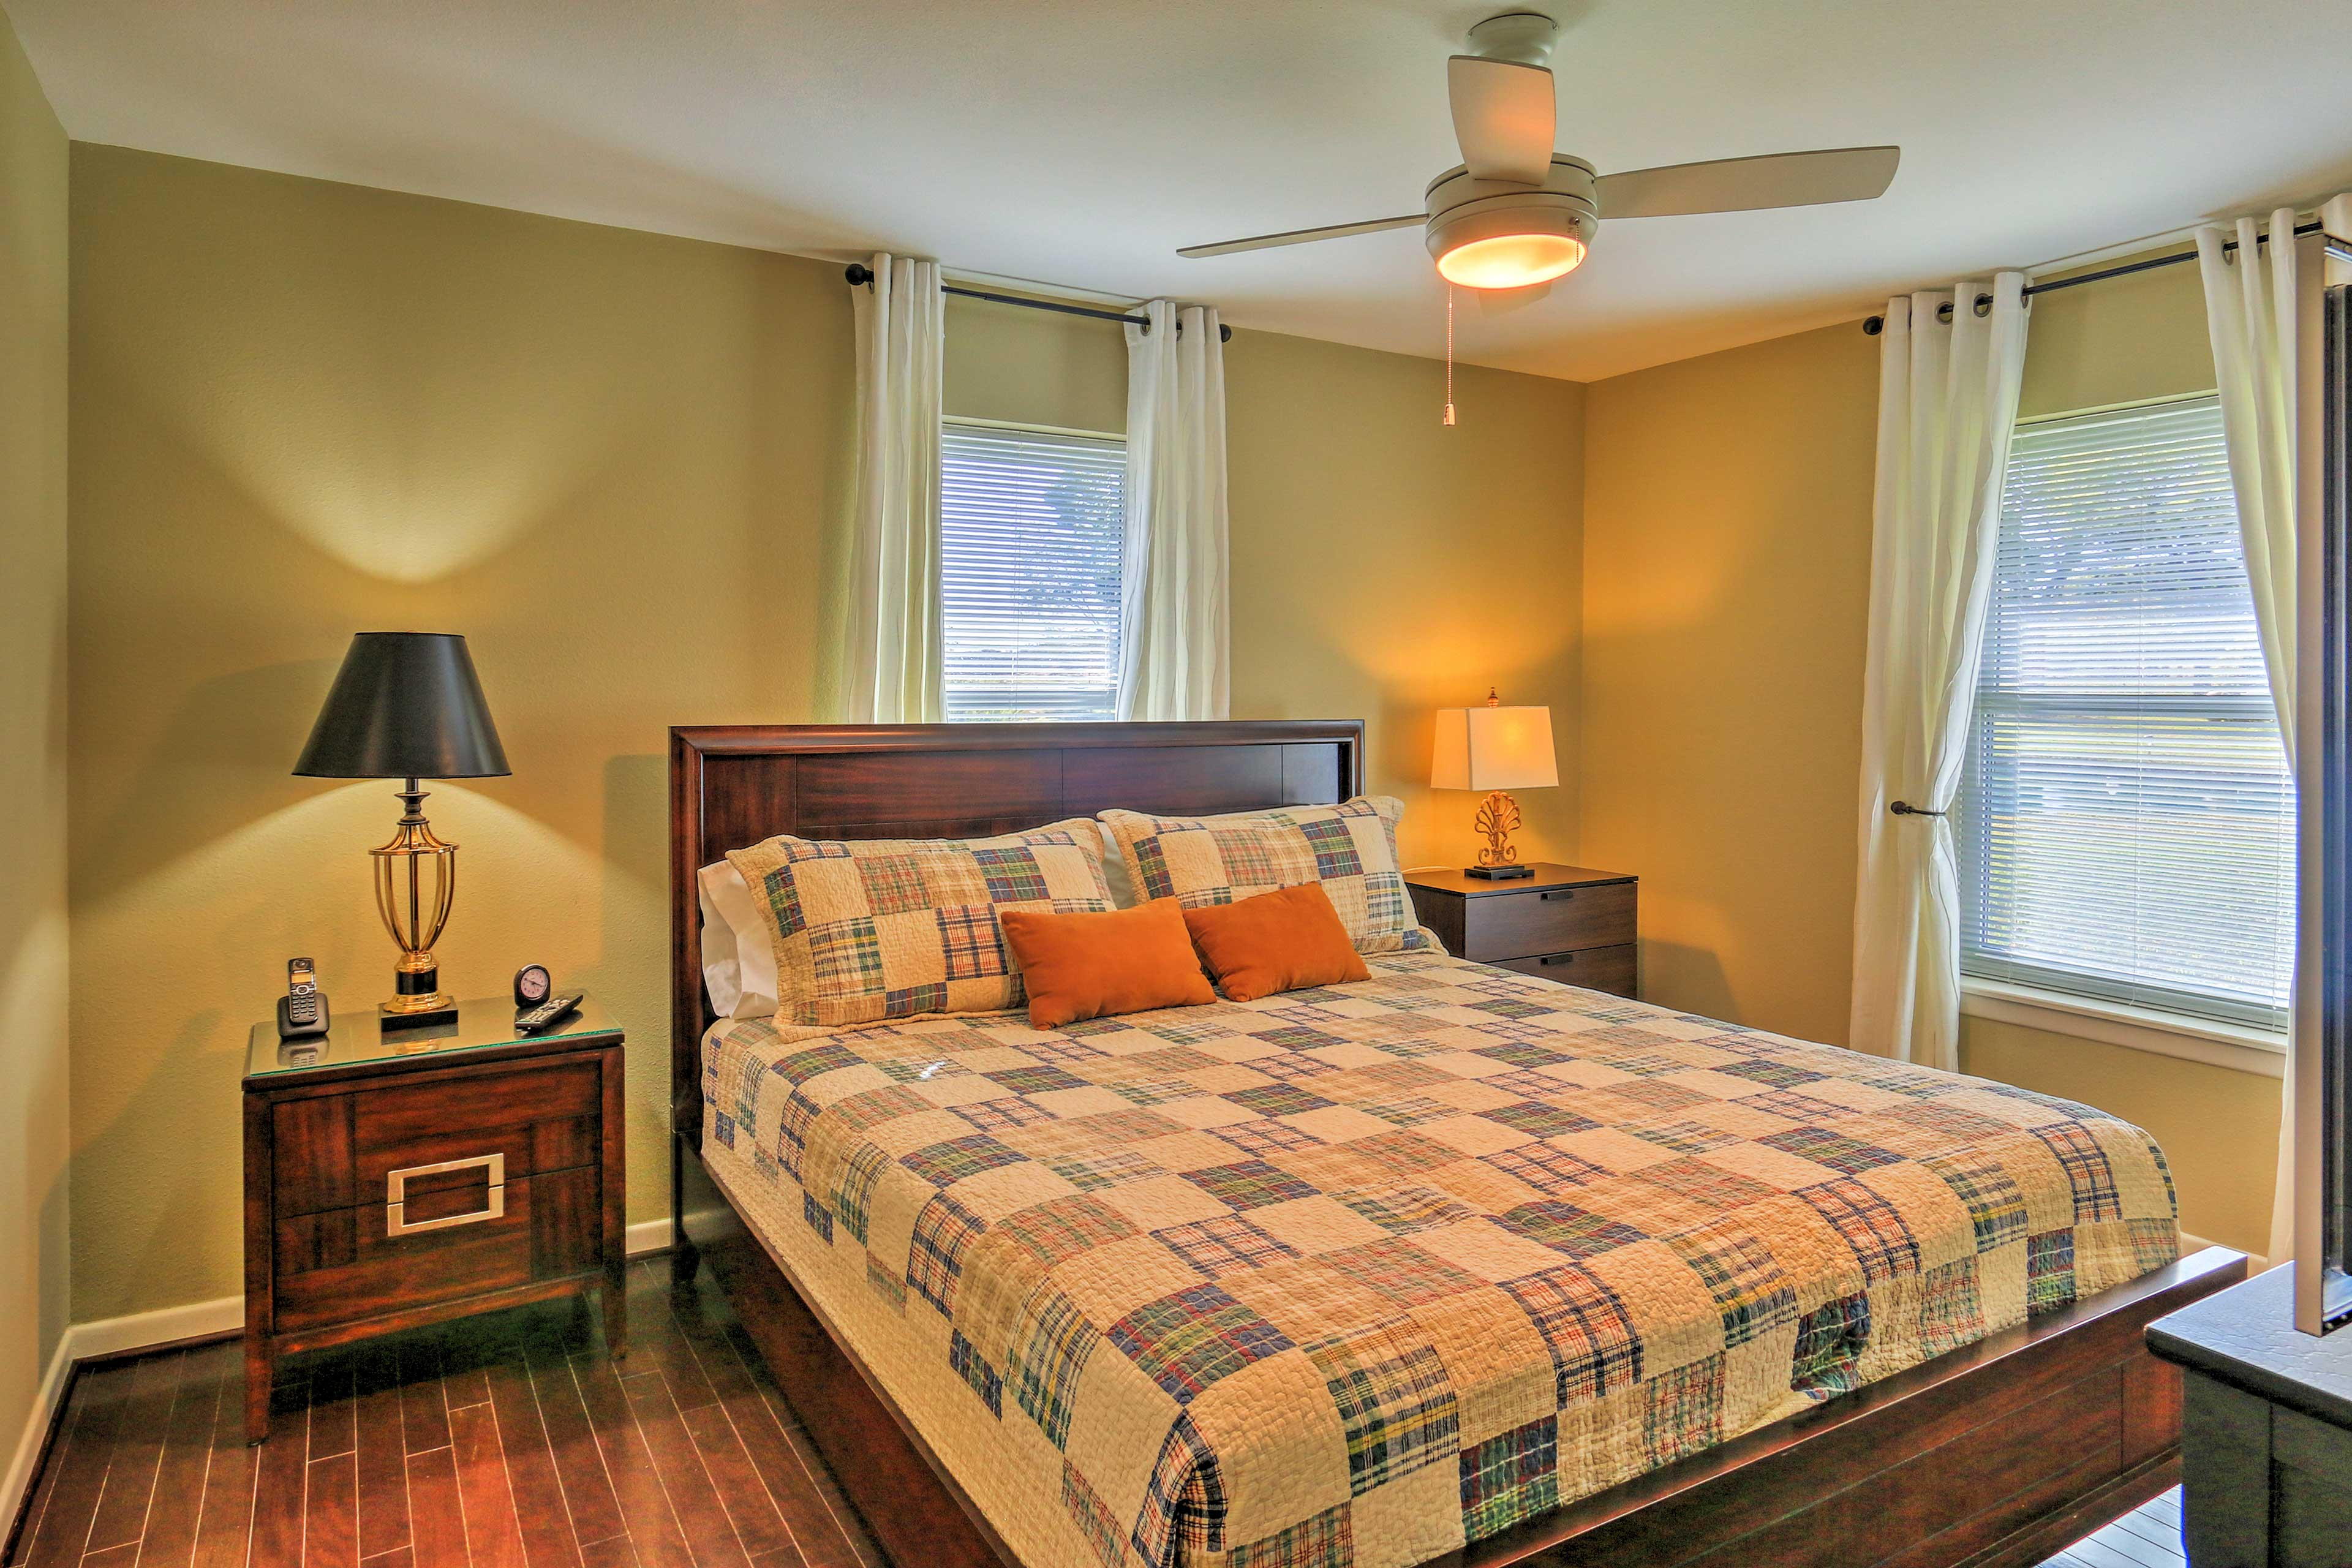 The warm and earthy decor create a cozy atmosphere for an optimal nights rest.